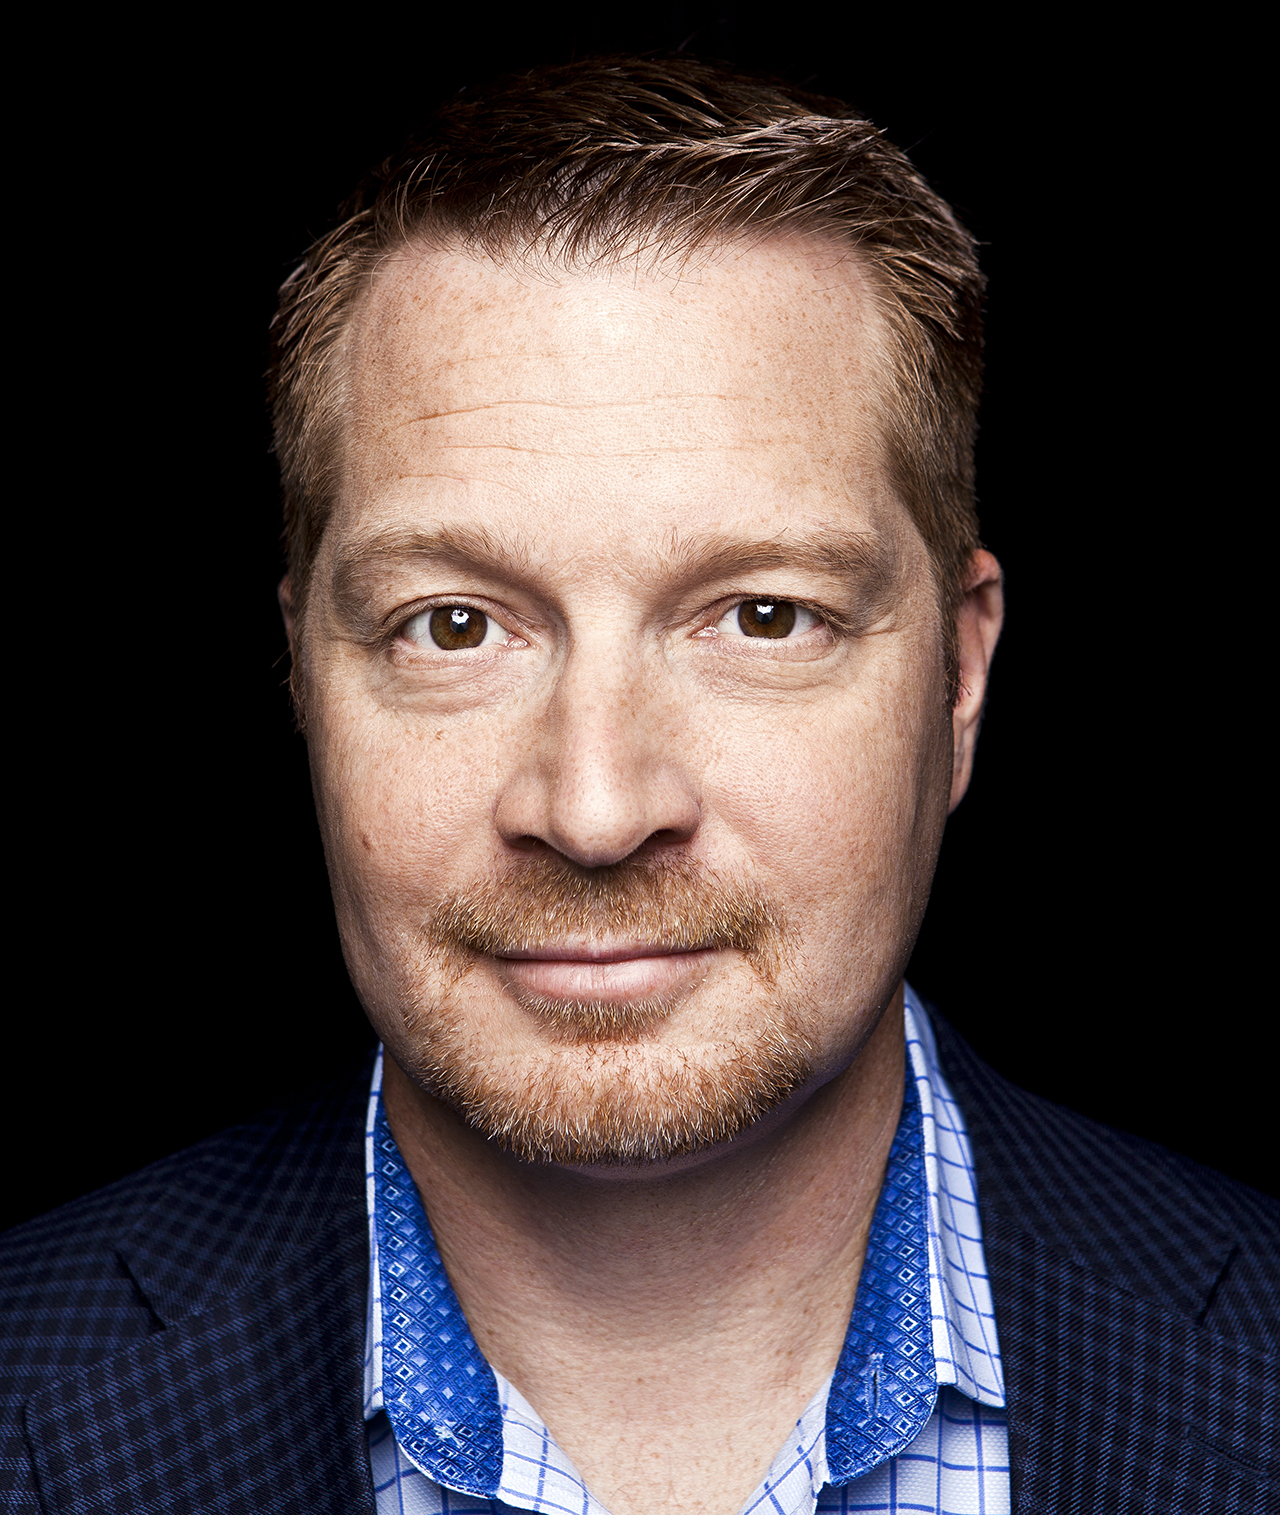 In conversation with George Kurtz, CEO of CrowdStrike | Fortune